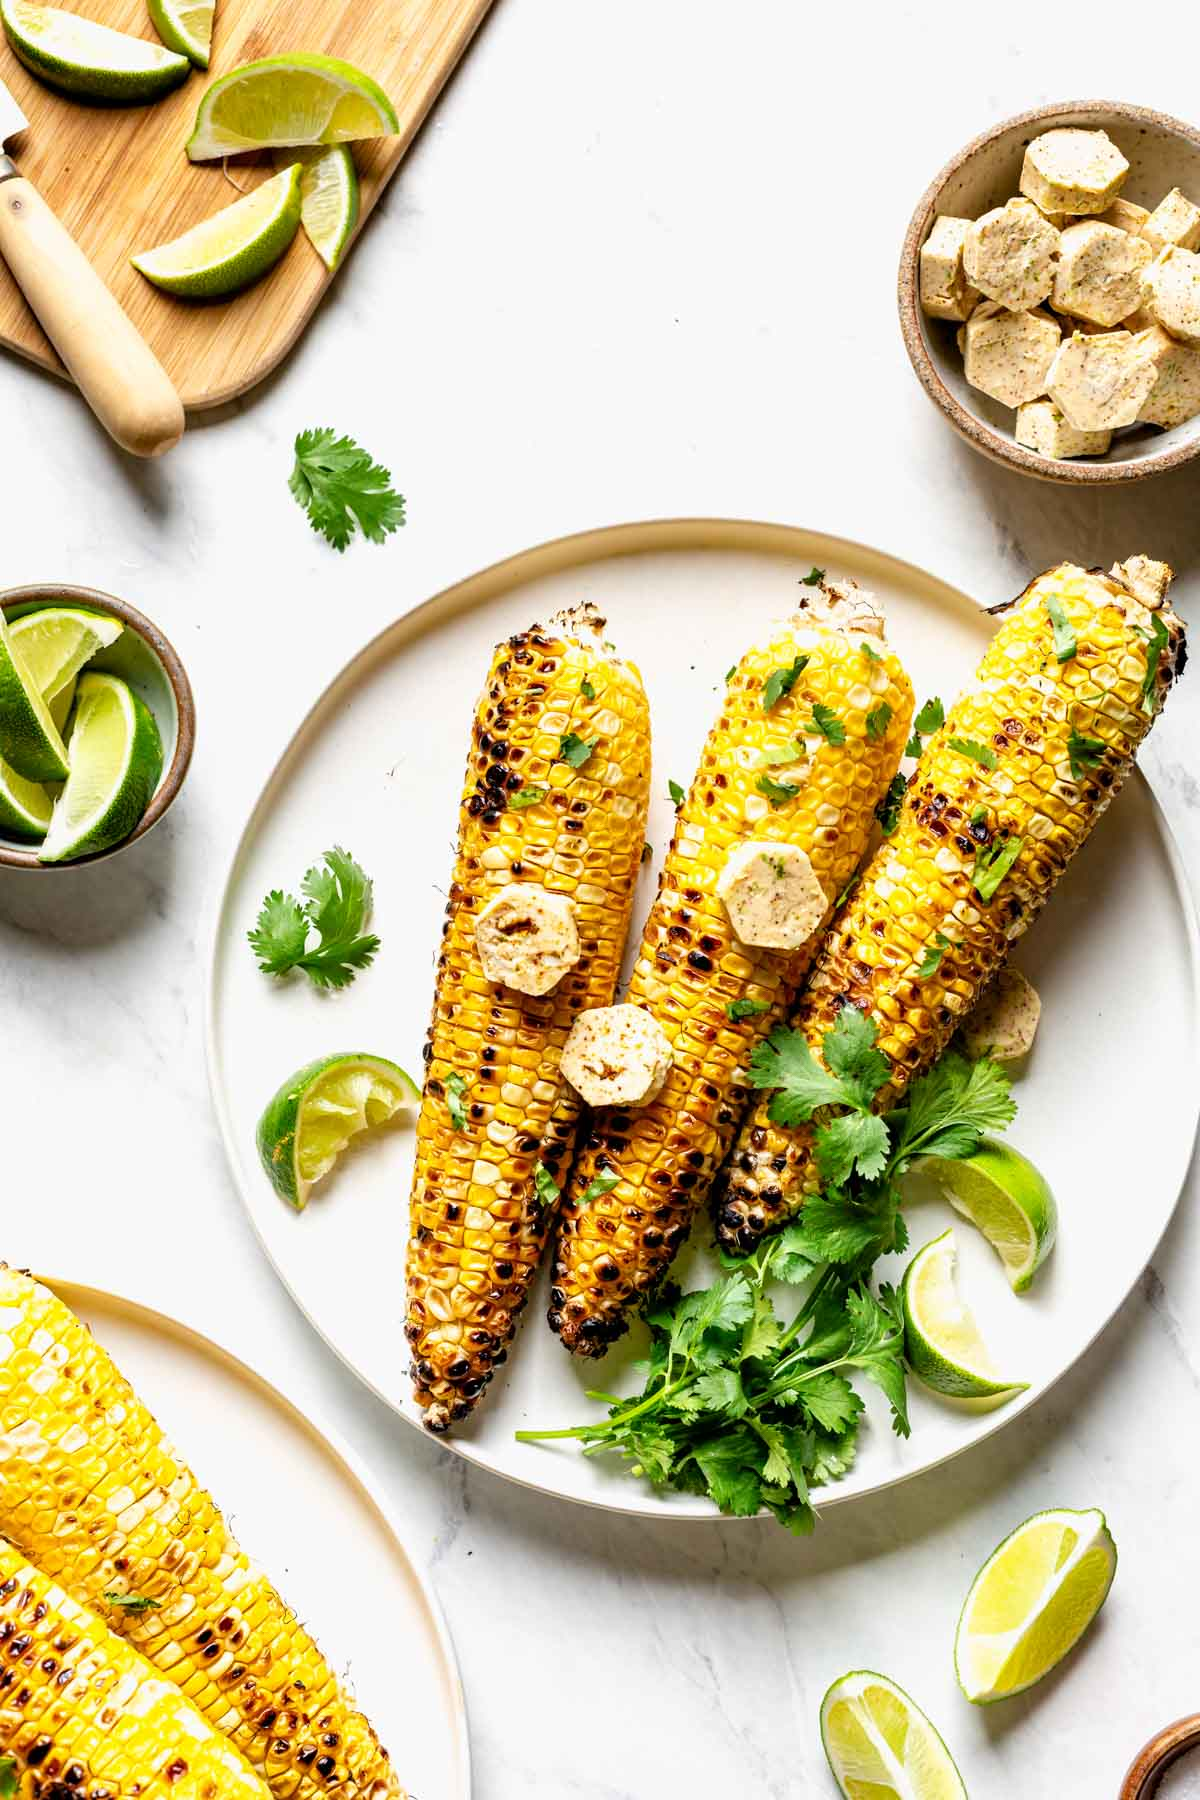 a plate of corn on the cob with cilantro and lime wedges